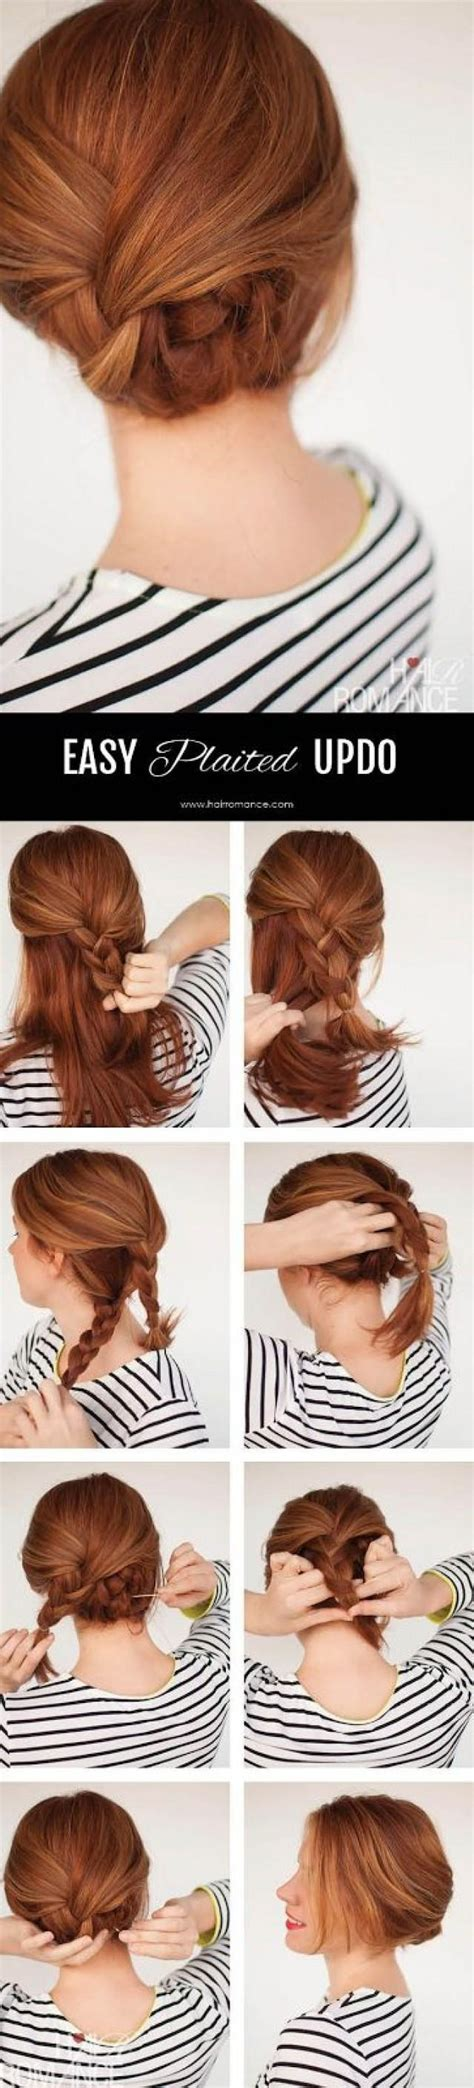 Easy Braided Hairstyles For Beginners by 13 Simple Braided Hairstyles For Beginners 2467933 Weddbook